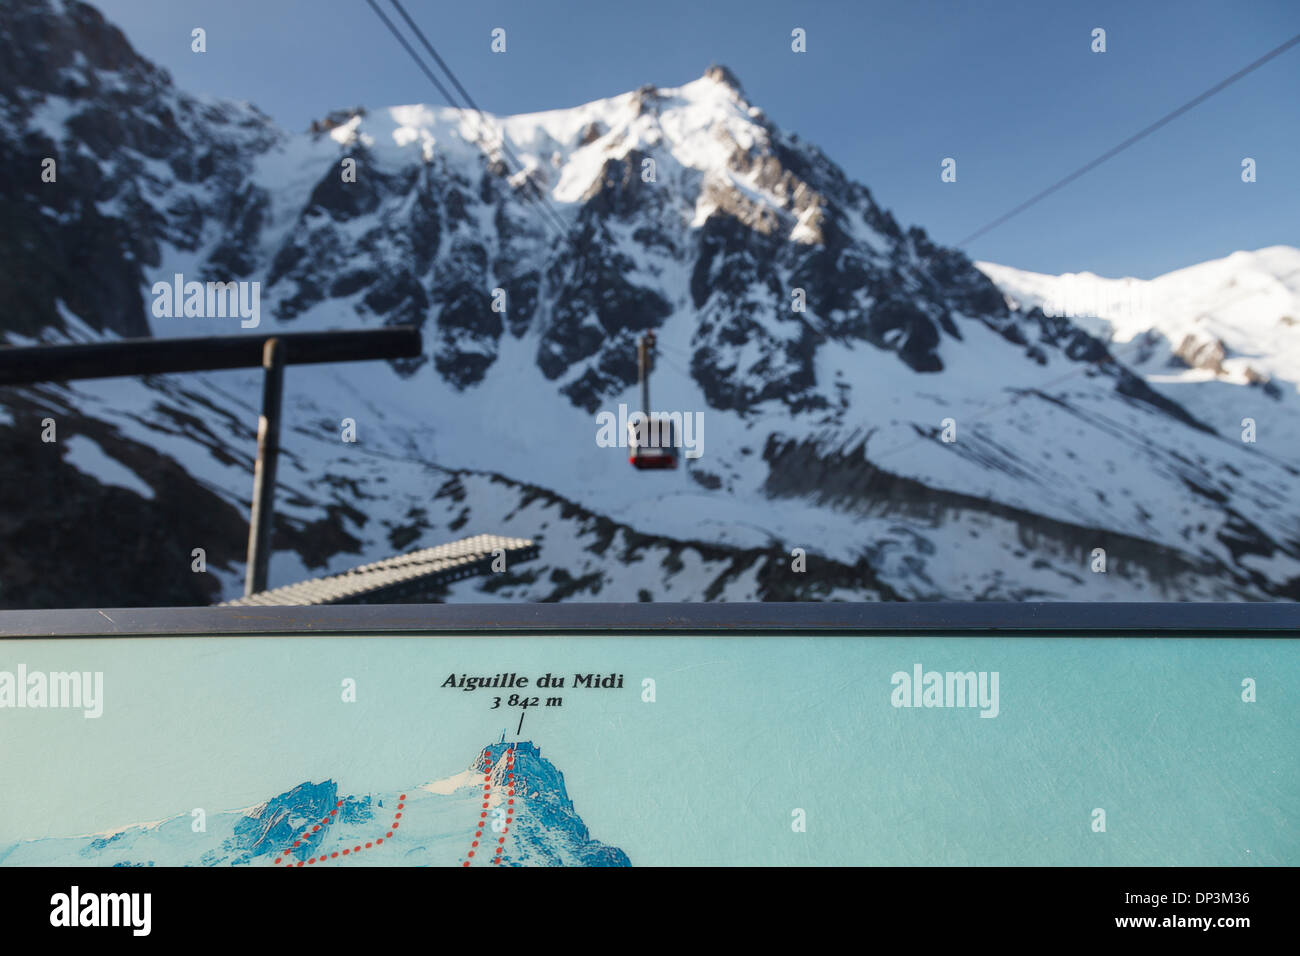 Aiguille du midi cable car - Panoramic Mont-Blanc Gondola, Chamonix, French Alps, Savoie, France, Europe - Stock Image